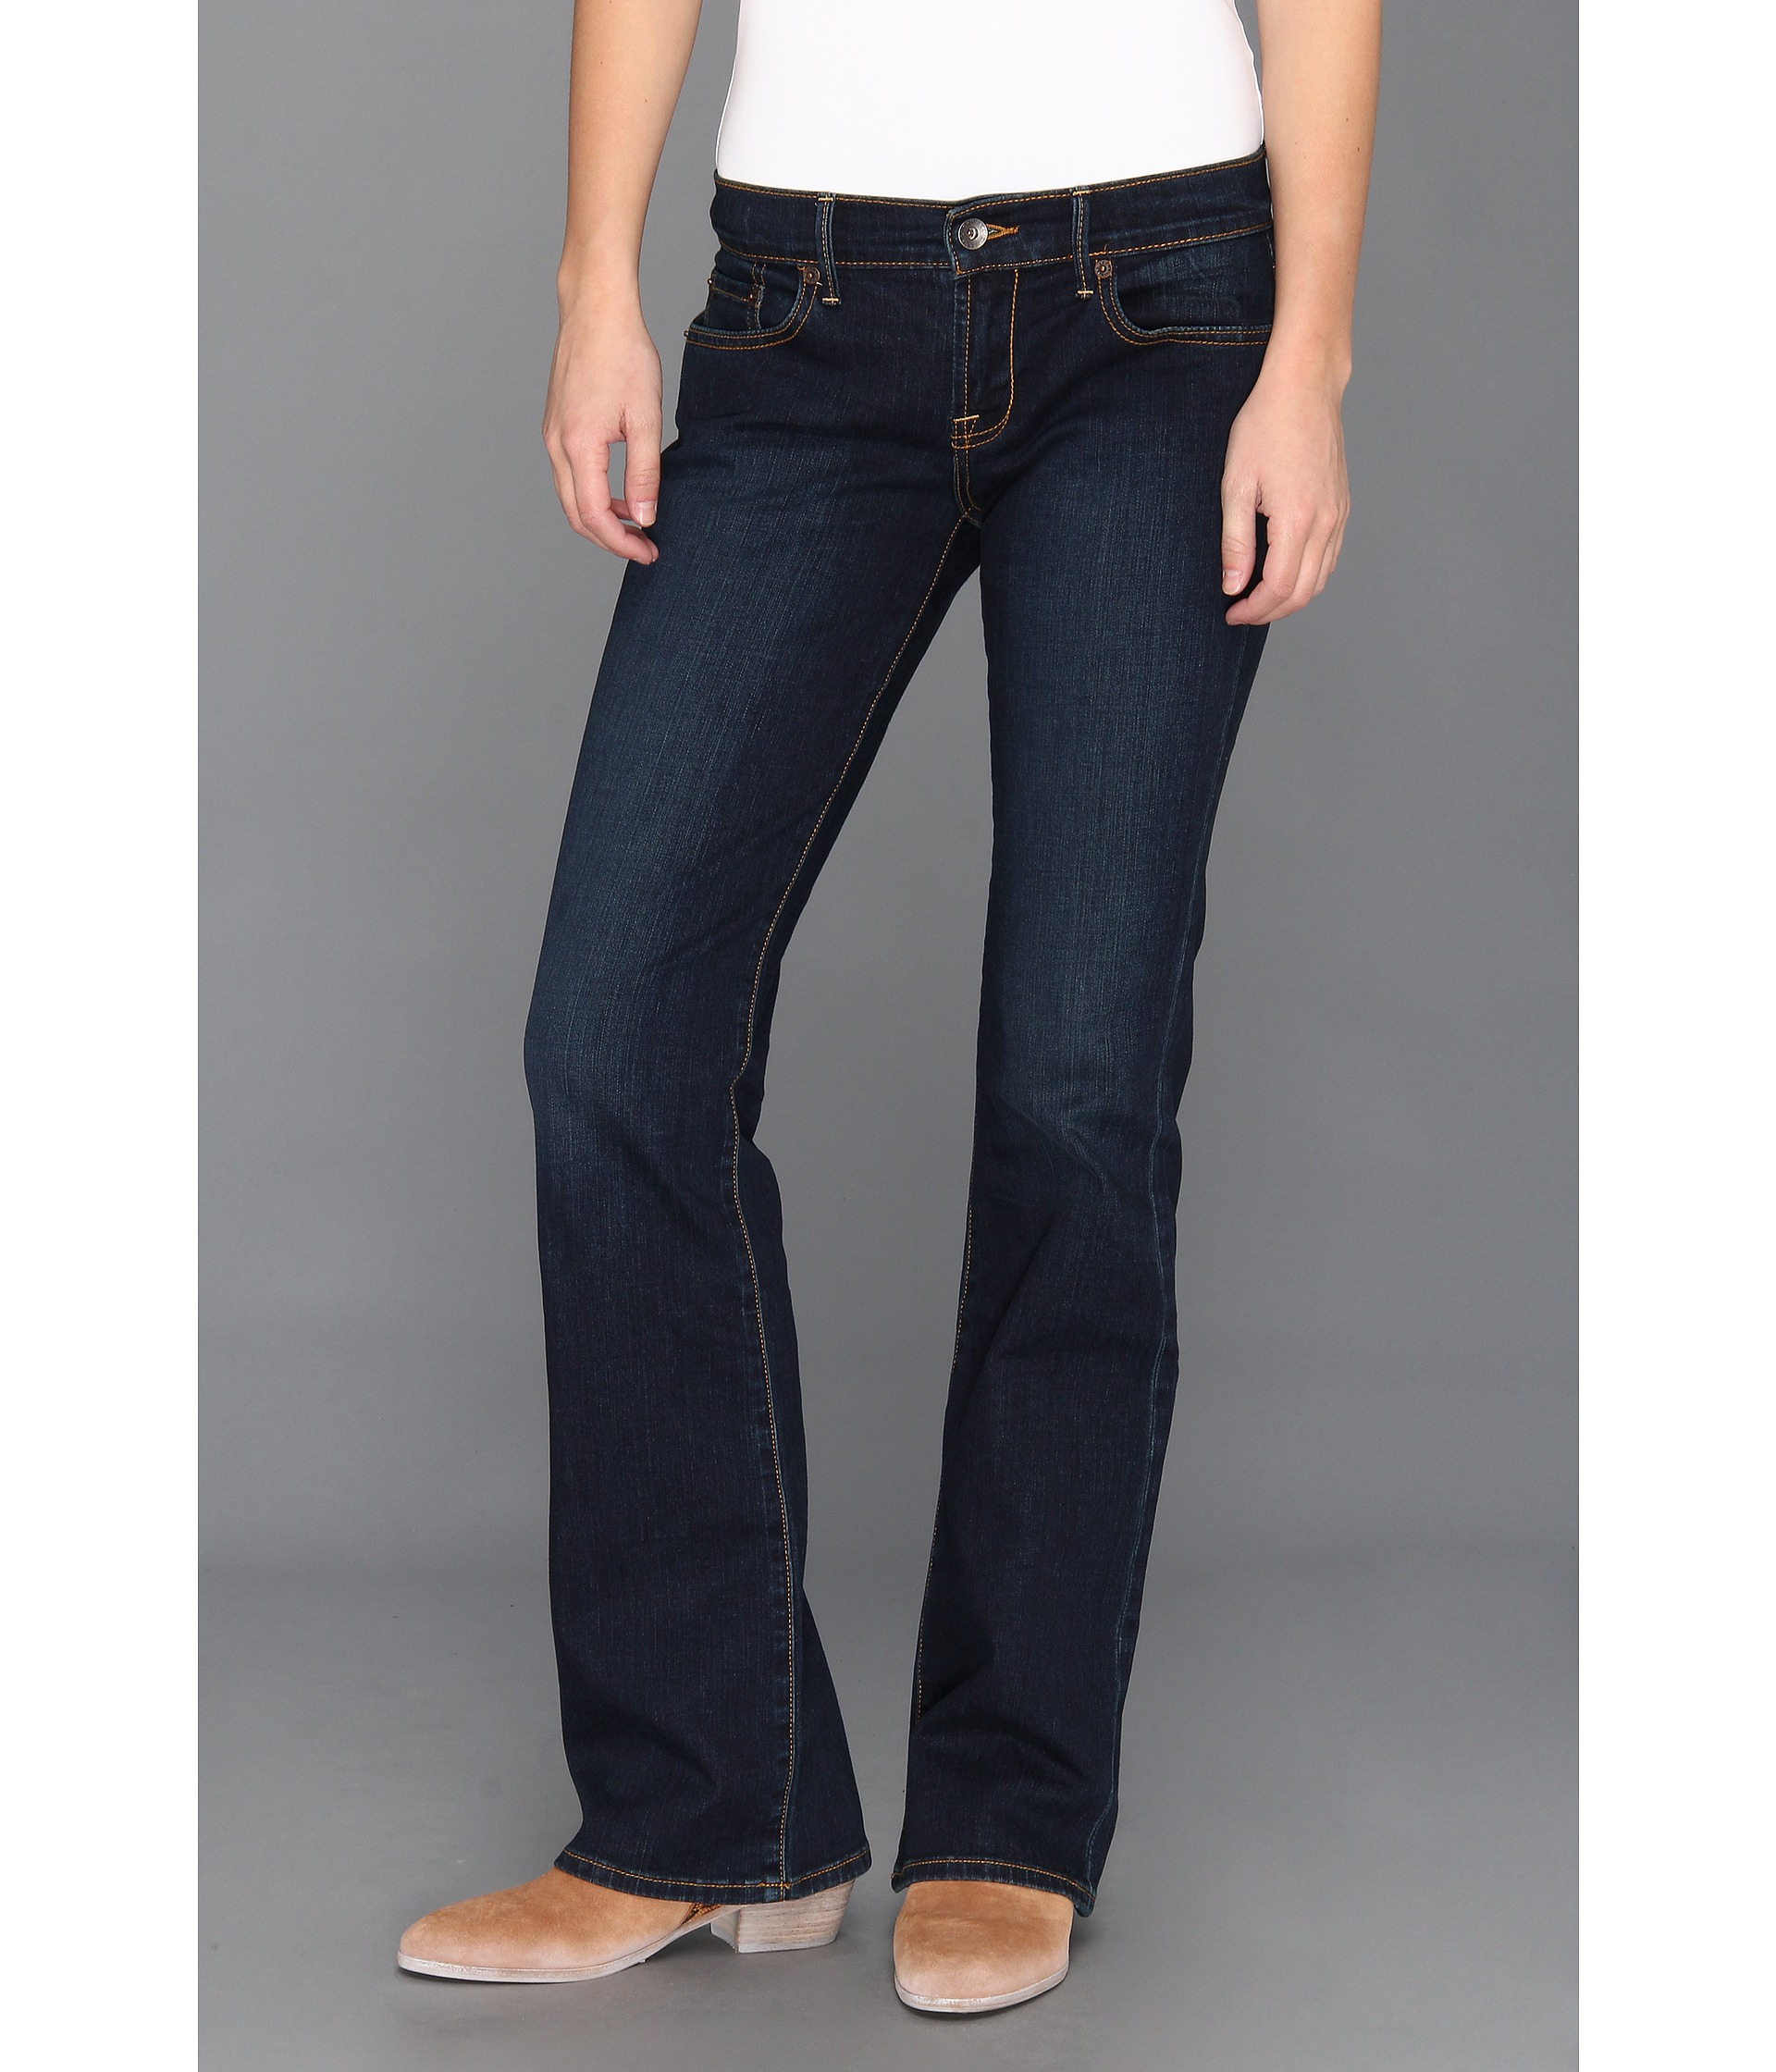 Brands Of Jeans For Women